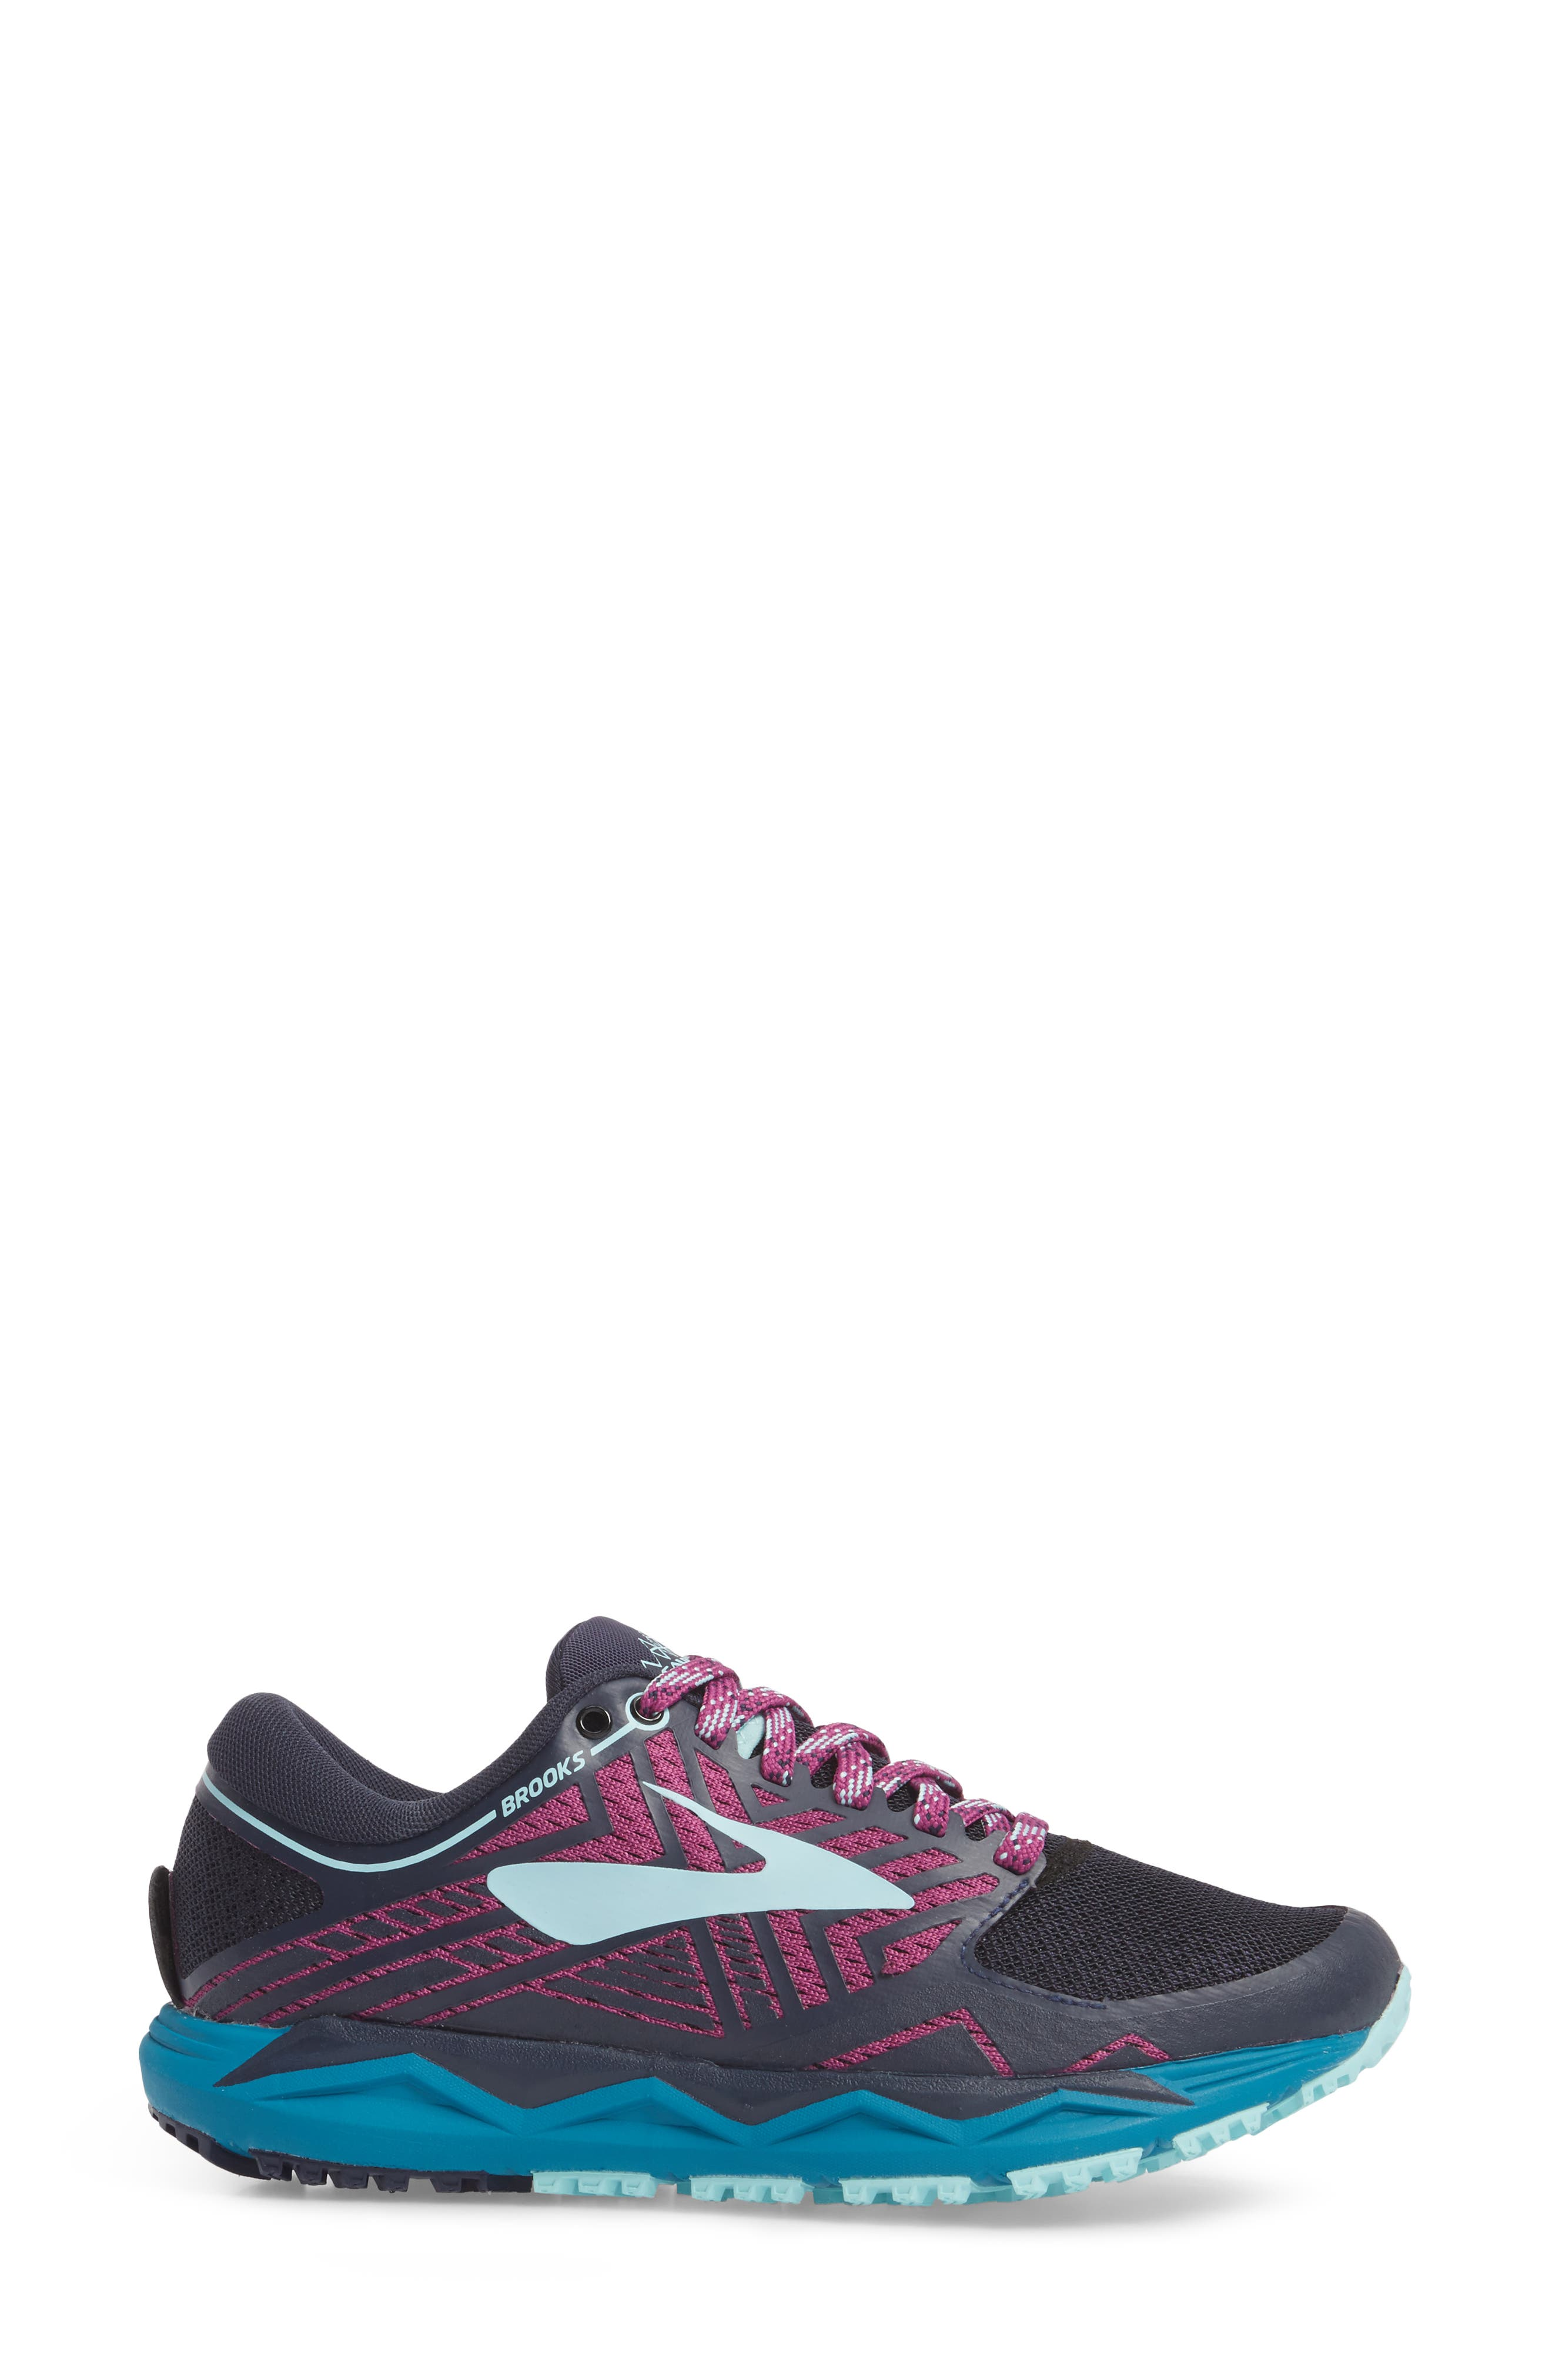 Caldera 2 Trail Running Shoe,                             Alternate thumbnail 3, color,                             NAVY/ PLUM/ ICE BLUE